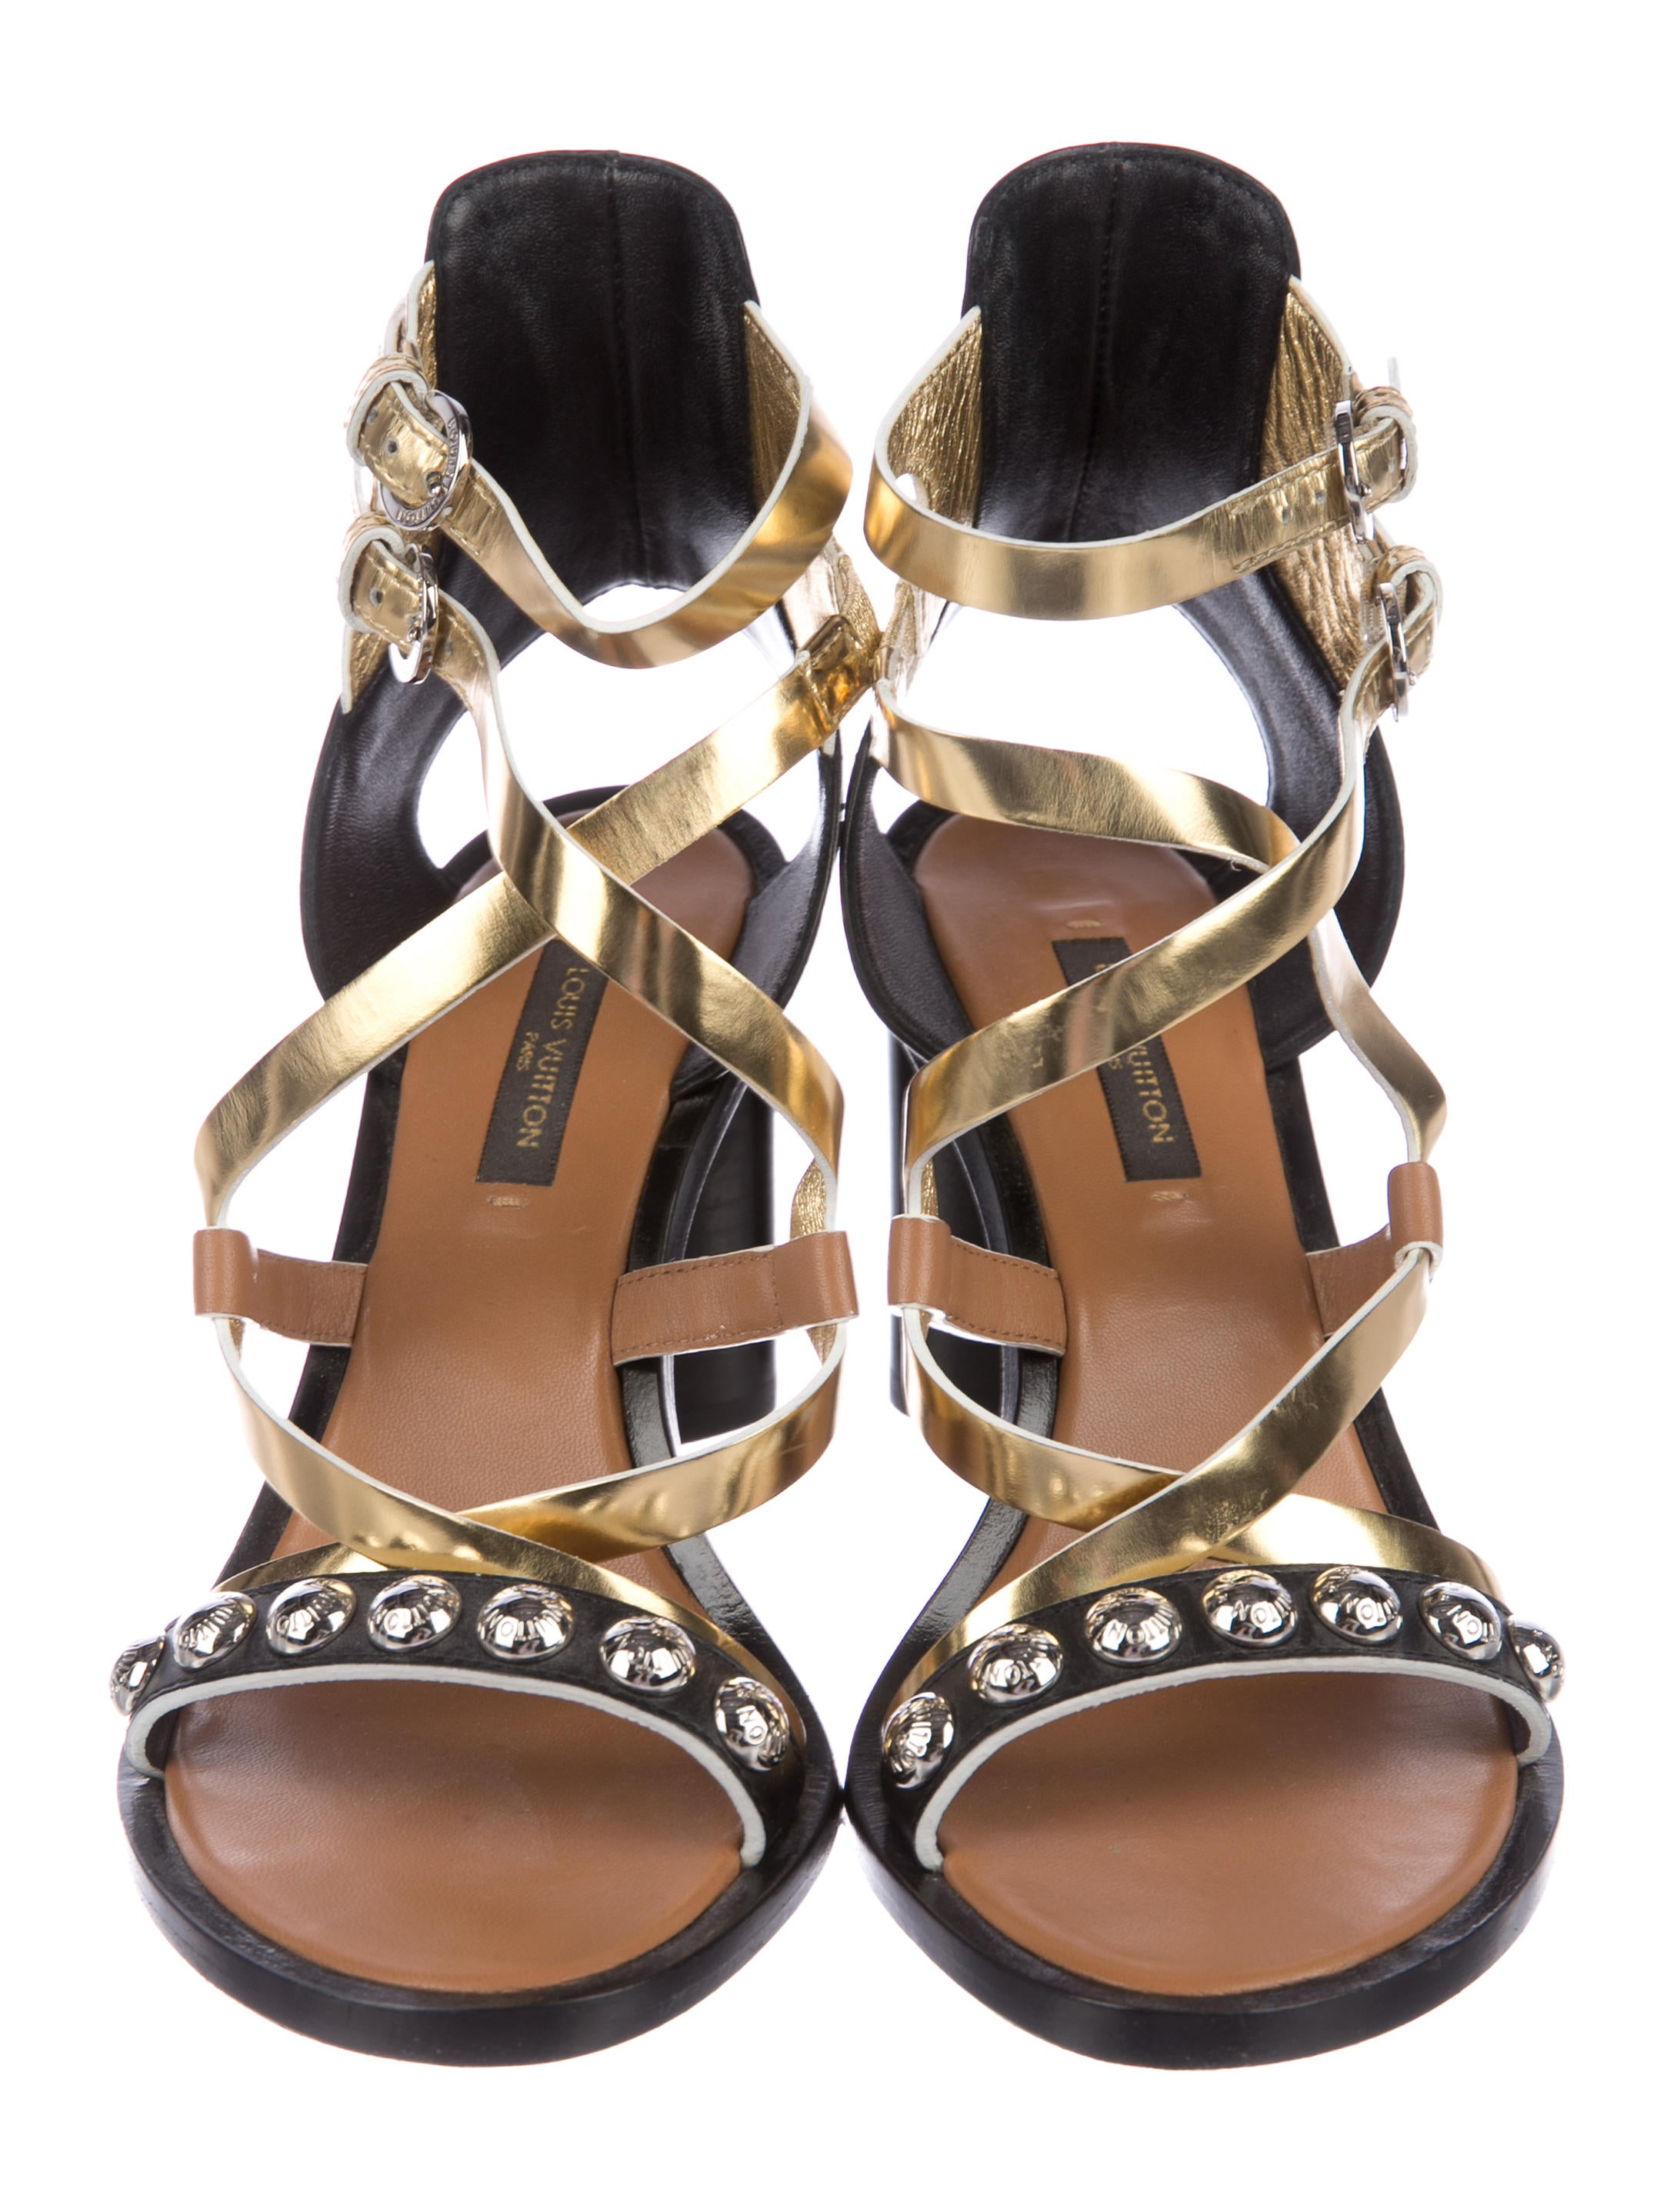 3415665aa152 Louis Vuitton Studded Crossover Sandals - Shoes - LOU157885